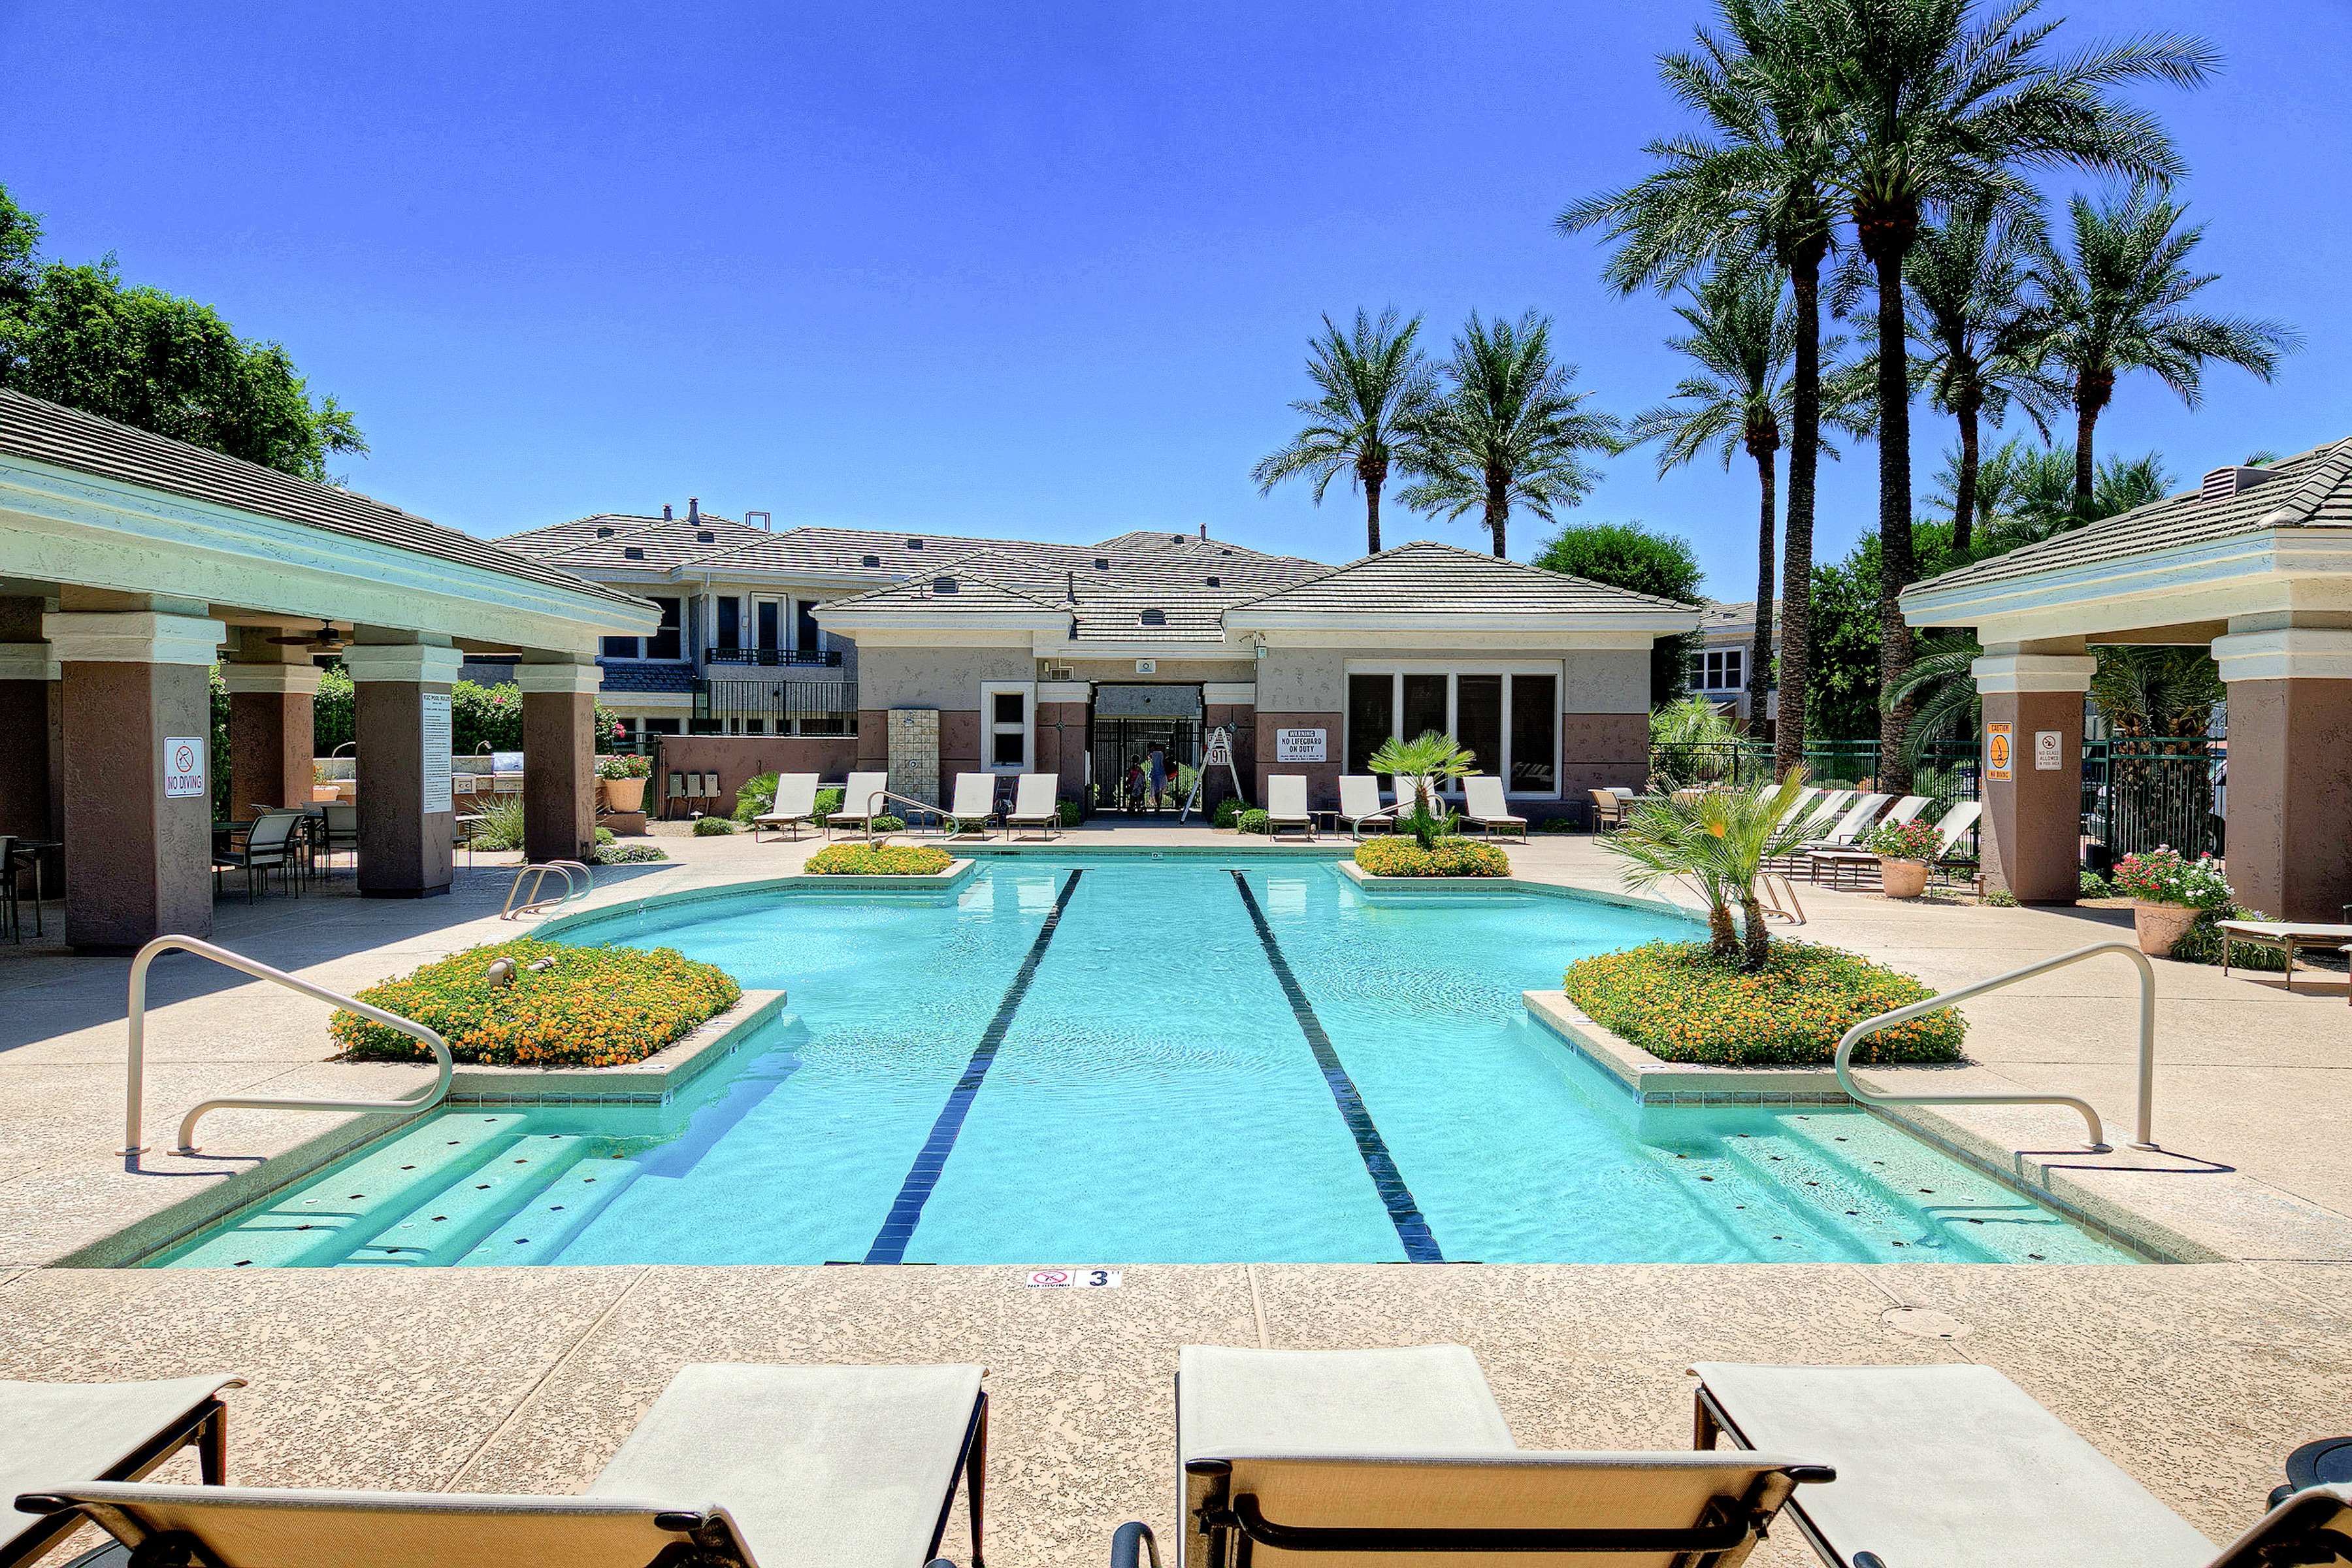 Stunning shared pool at this Scottsdale condo - also includes access to fitness center and barbeque grills.